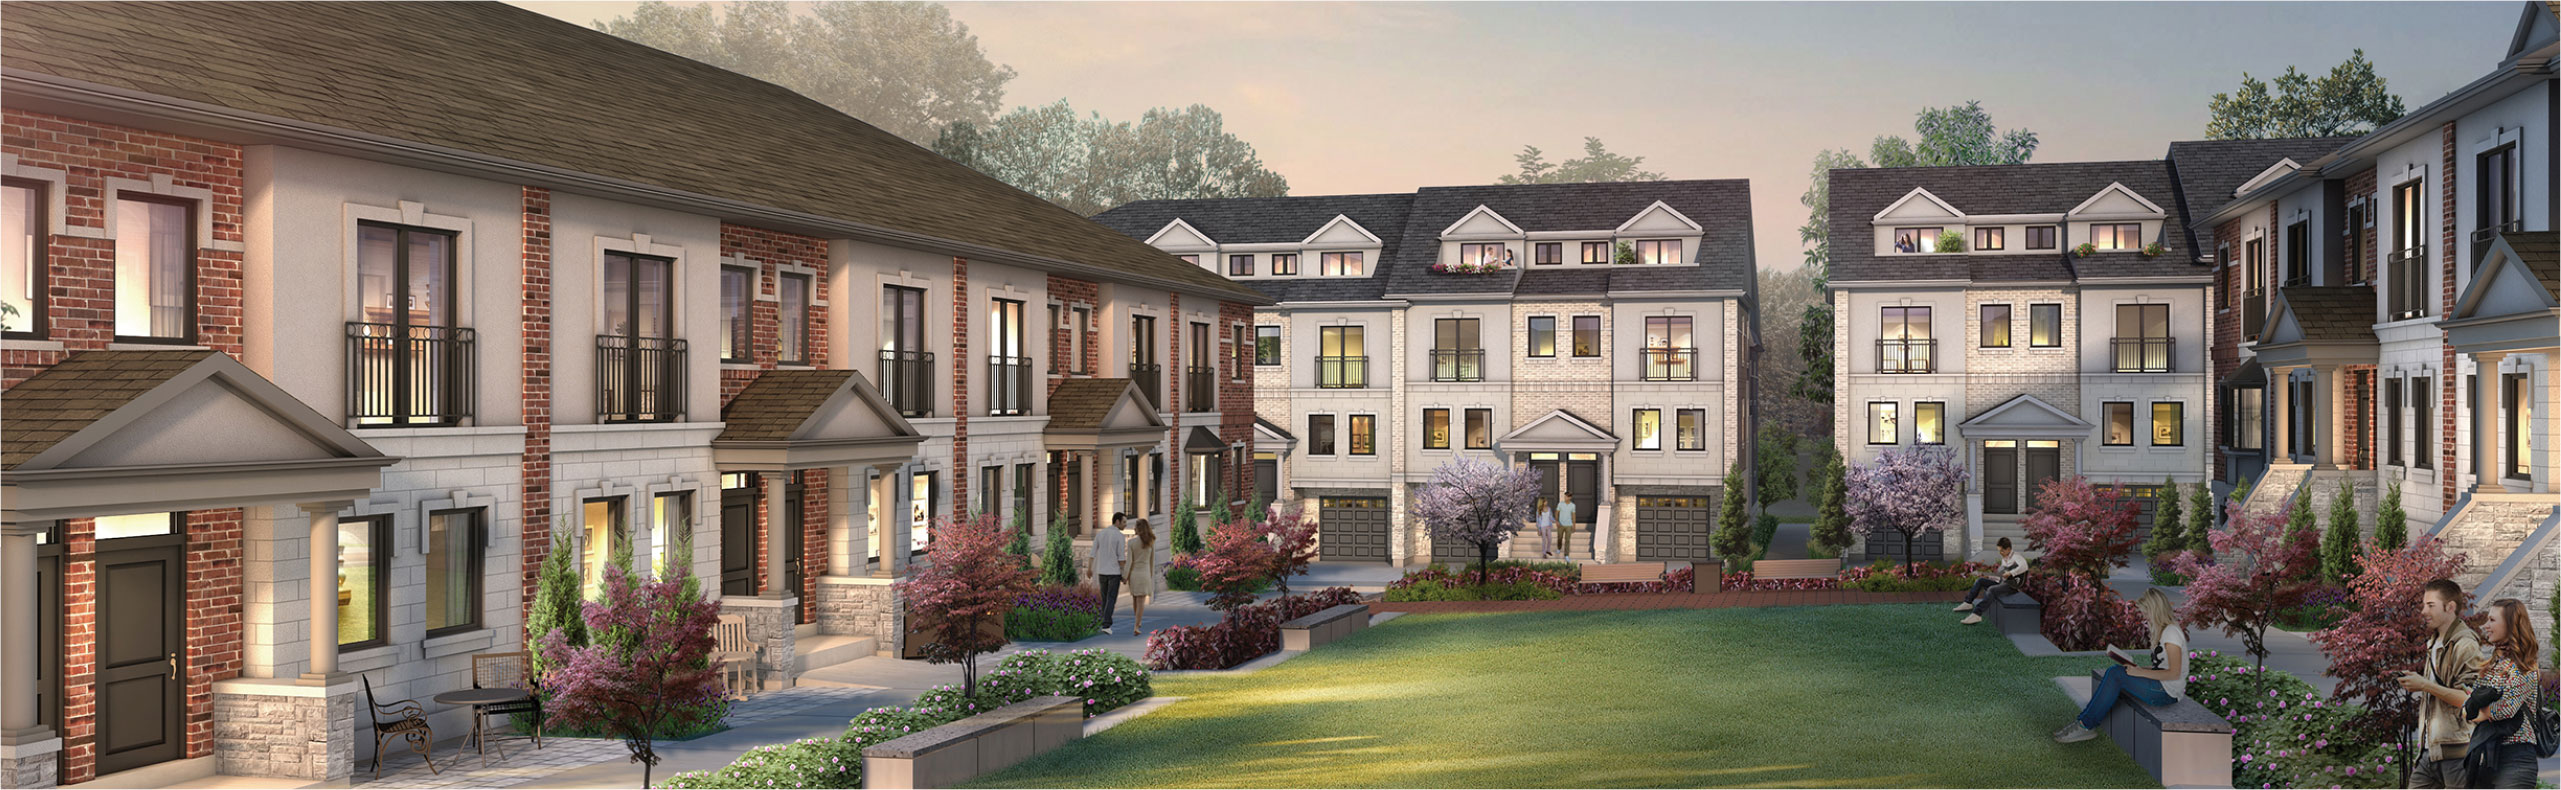 Townhomes in Whitby